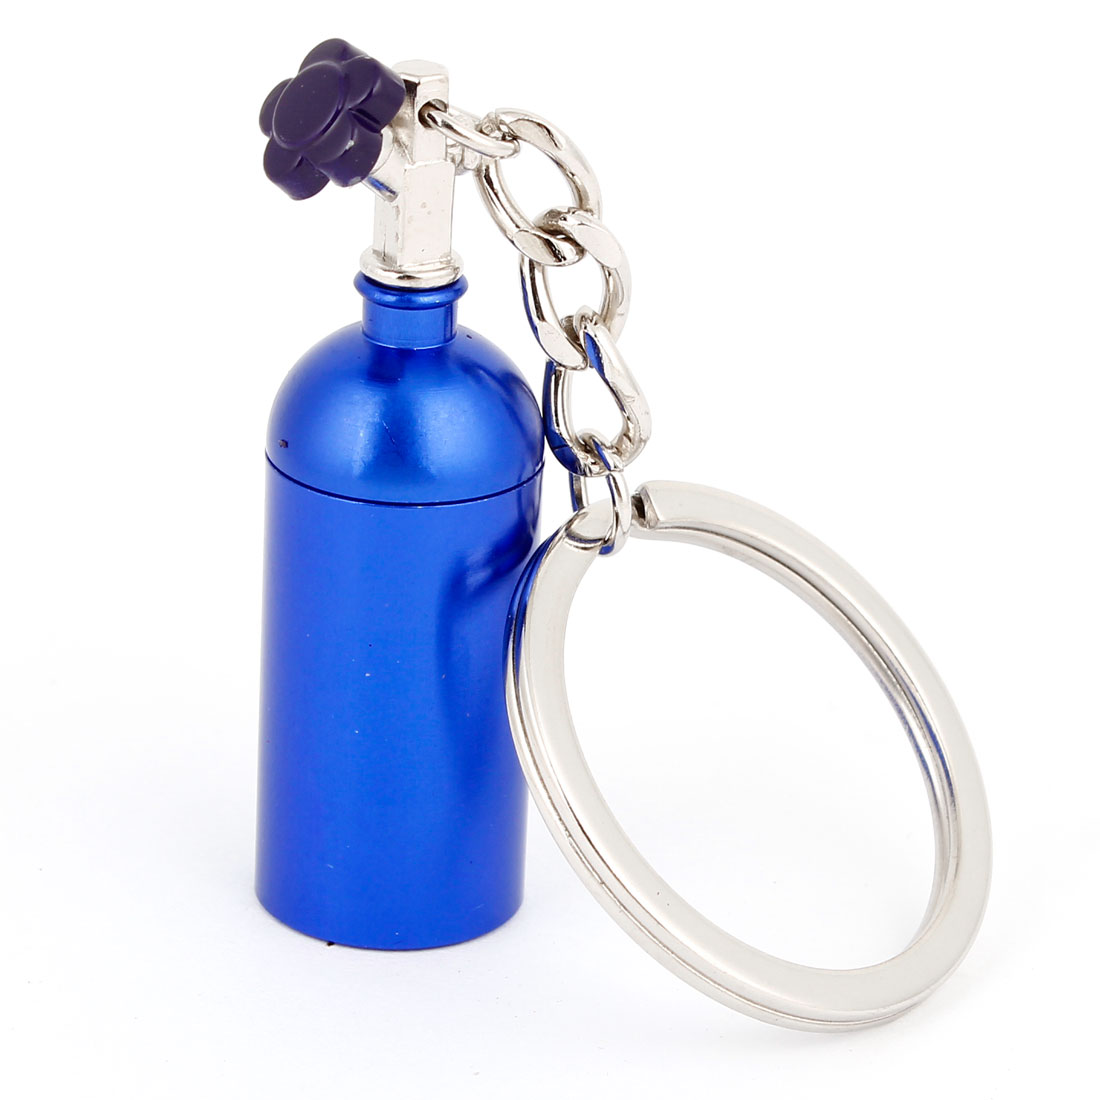 "Blue Metal Bottle Design Dangling 1.2"" Dia Split Ring Key Holder Keychain"